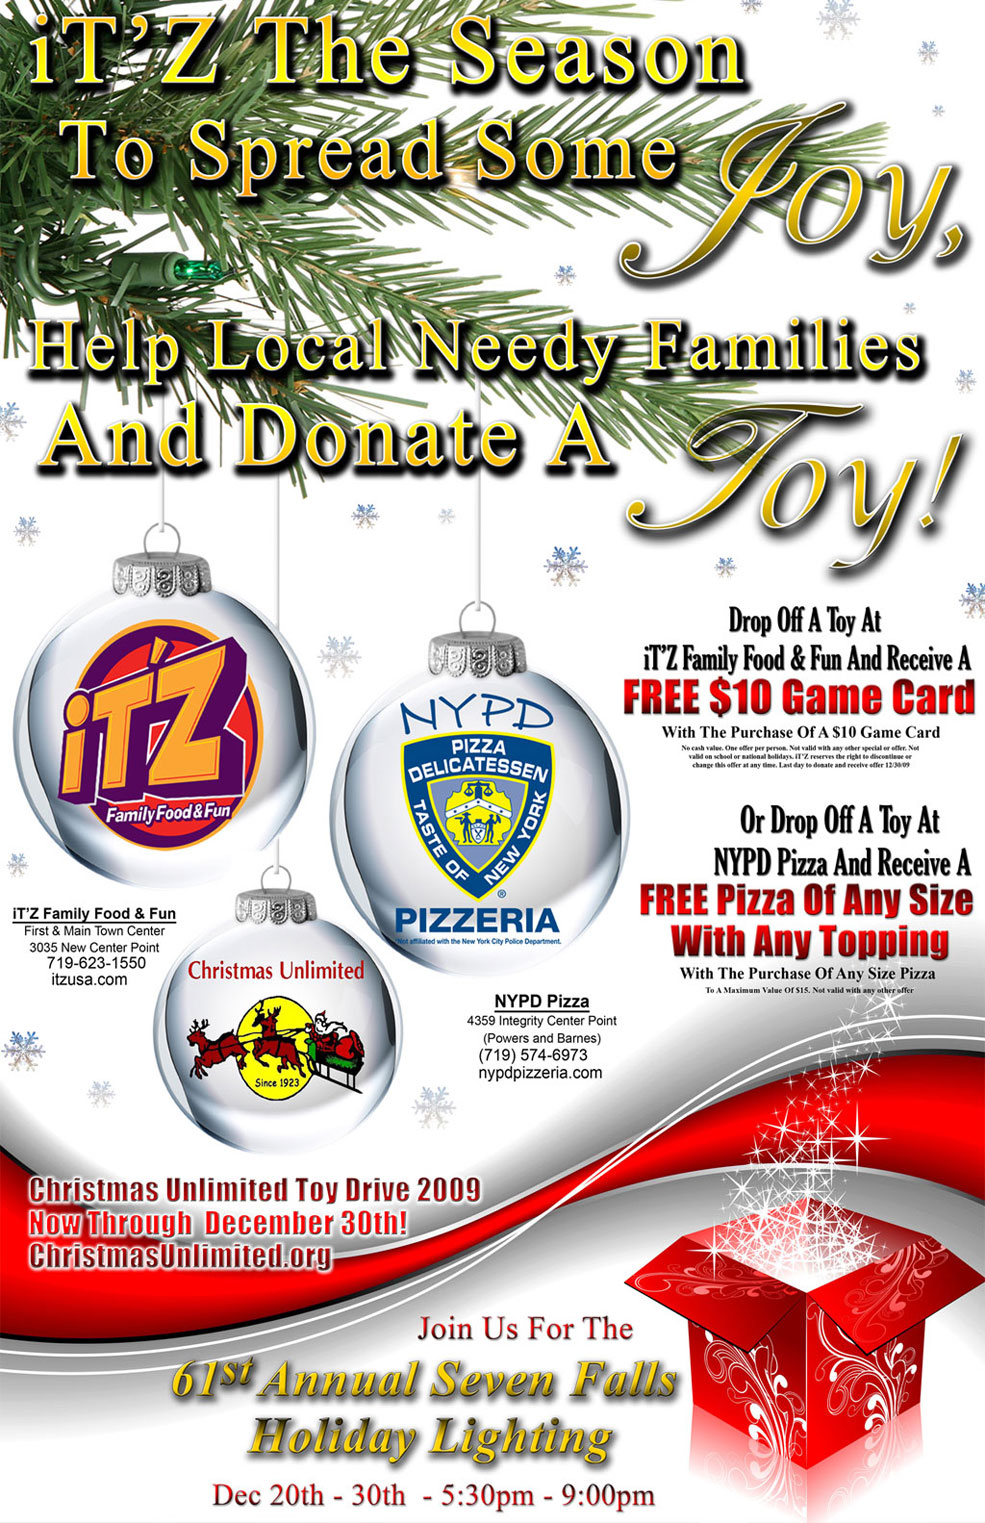 Colorado Springs Advertising and Marketing Agency | Christmas Unlimited Toy Drive - Colorado